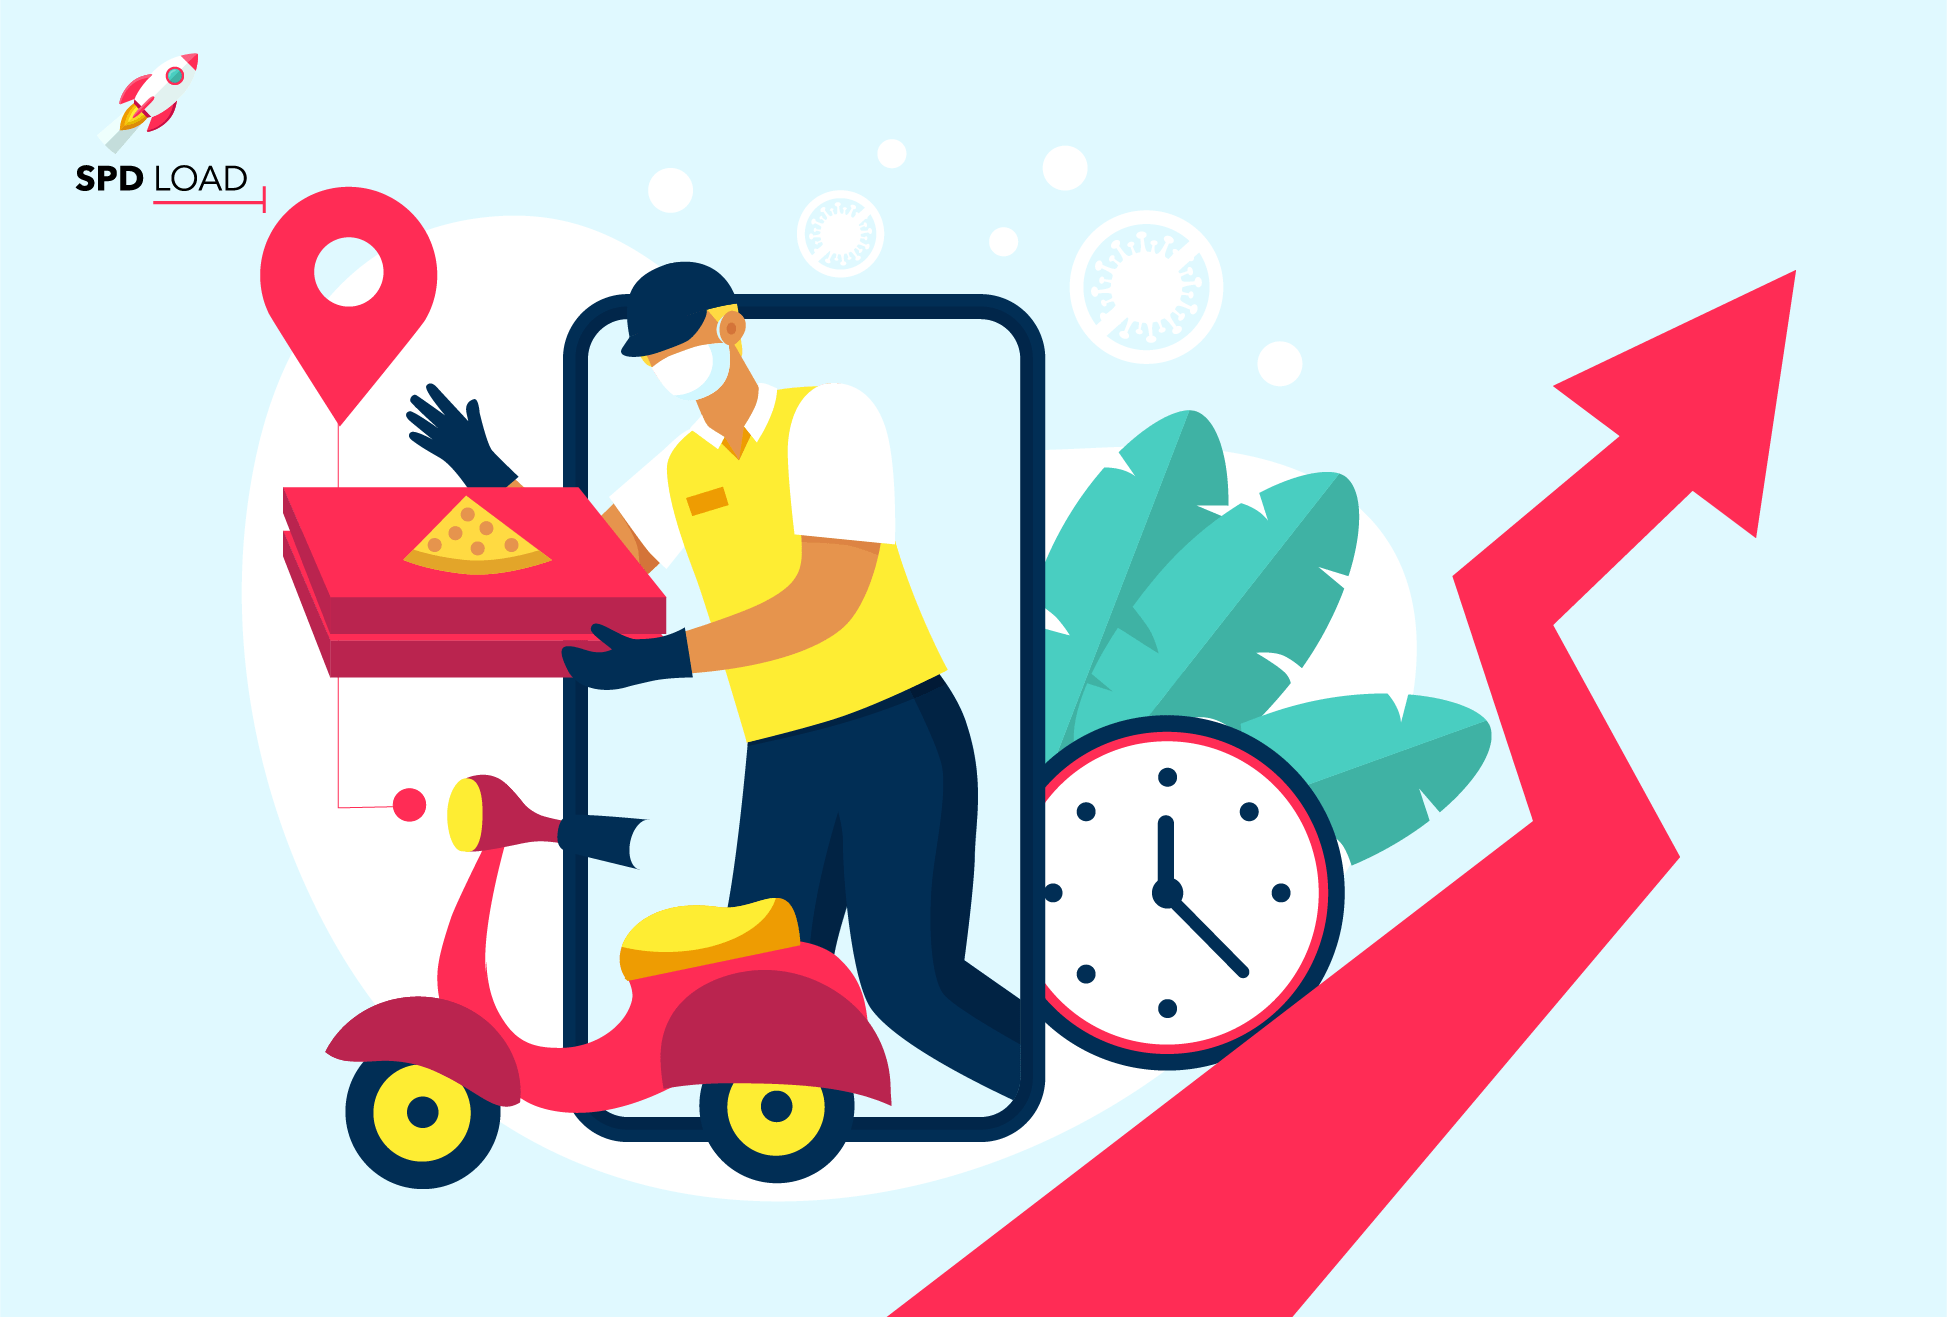 SpdLoad prepared an overview of top 7 food delivery trends USA